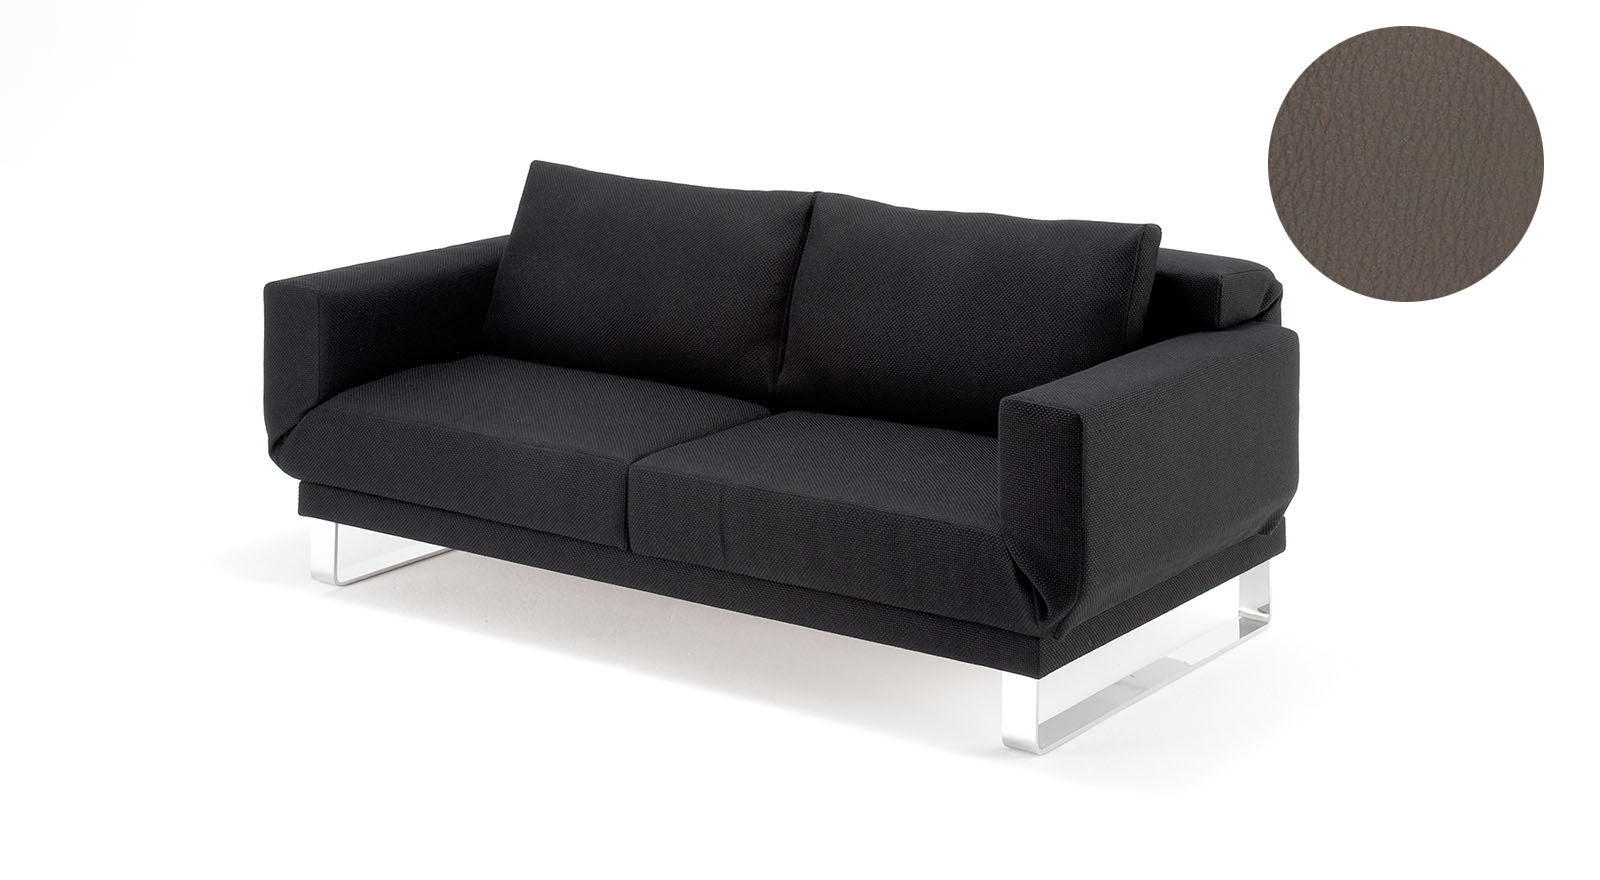 angebot riga xl schlafsofa von franz fertig wohnwerk. Black Bedroom Furniture Sets. Home Design Ideas